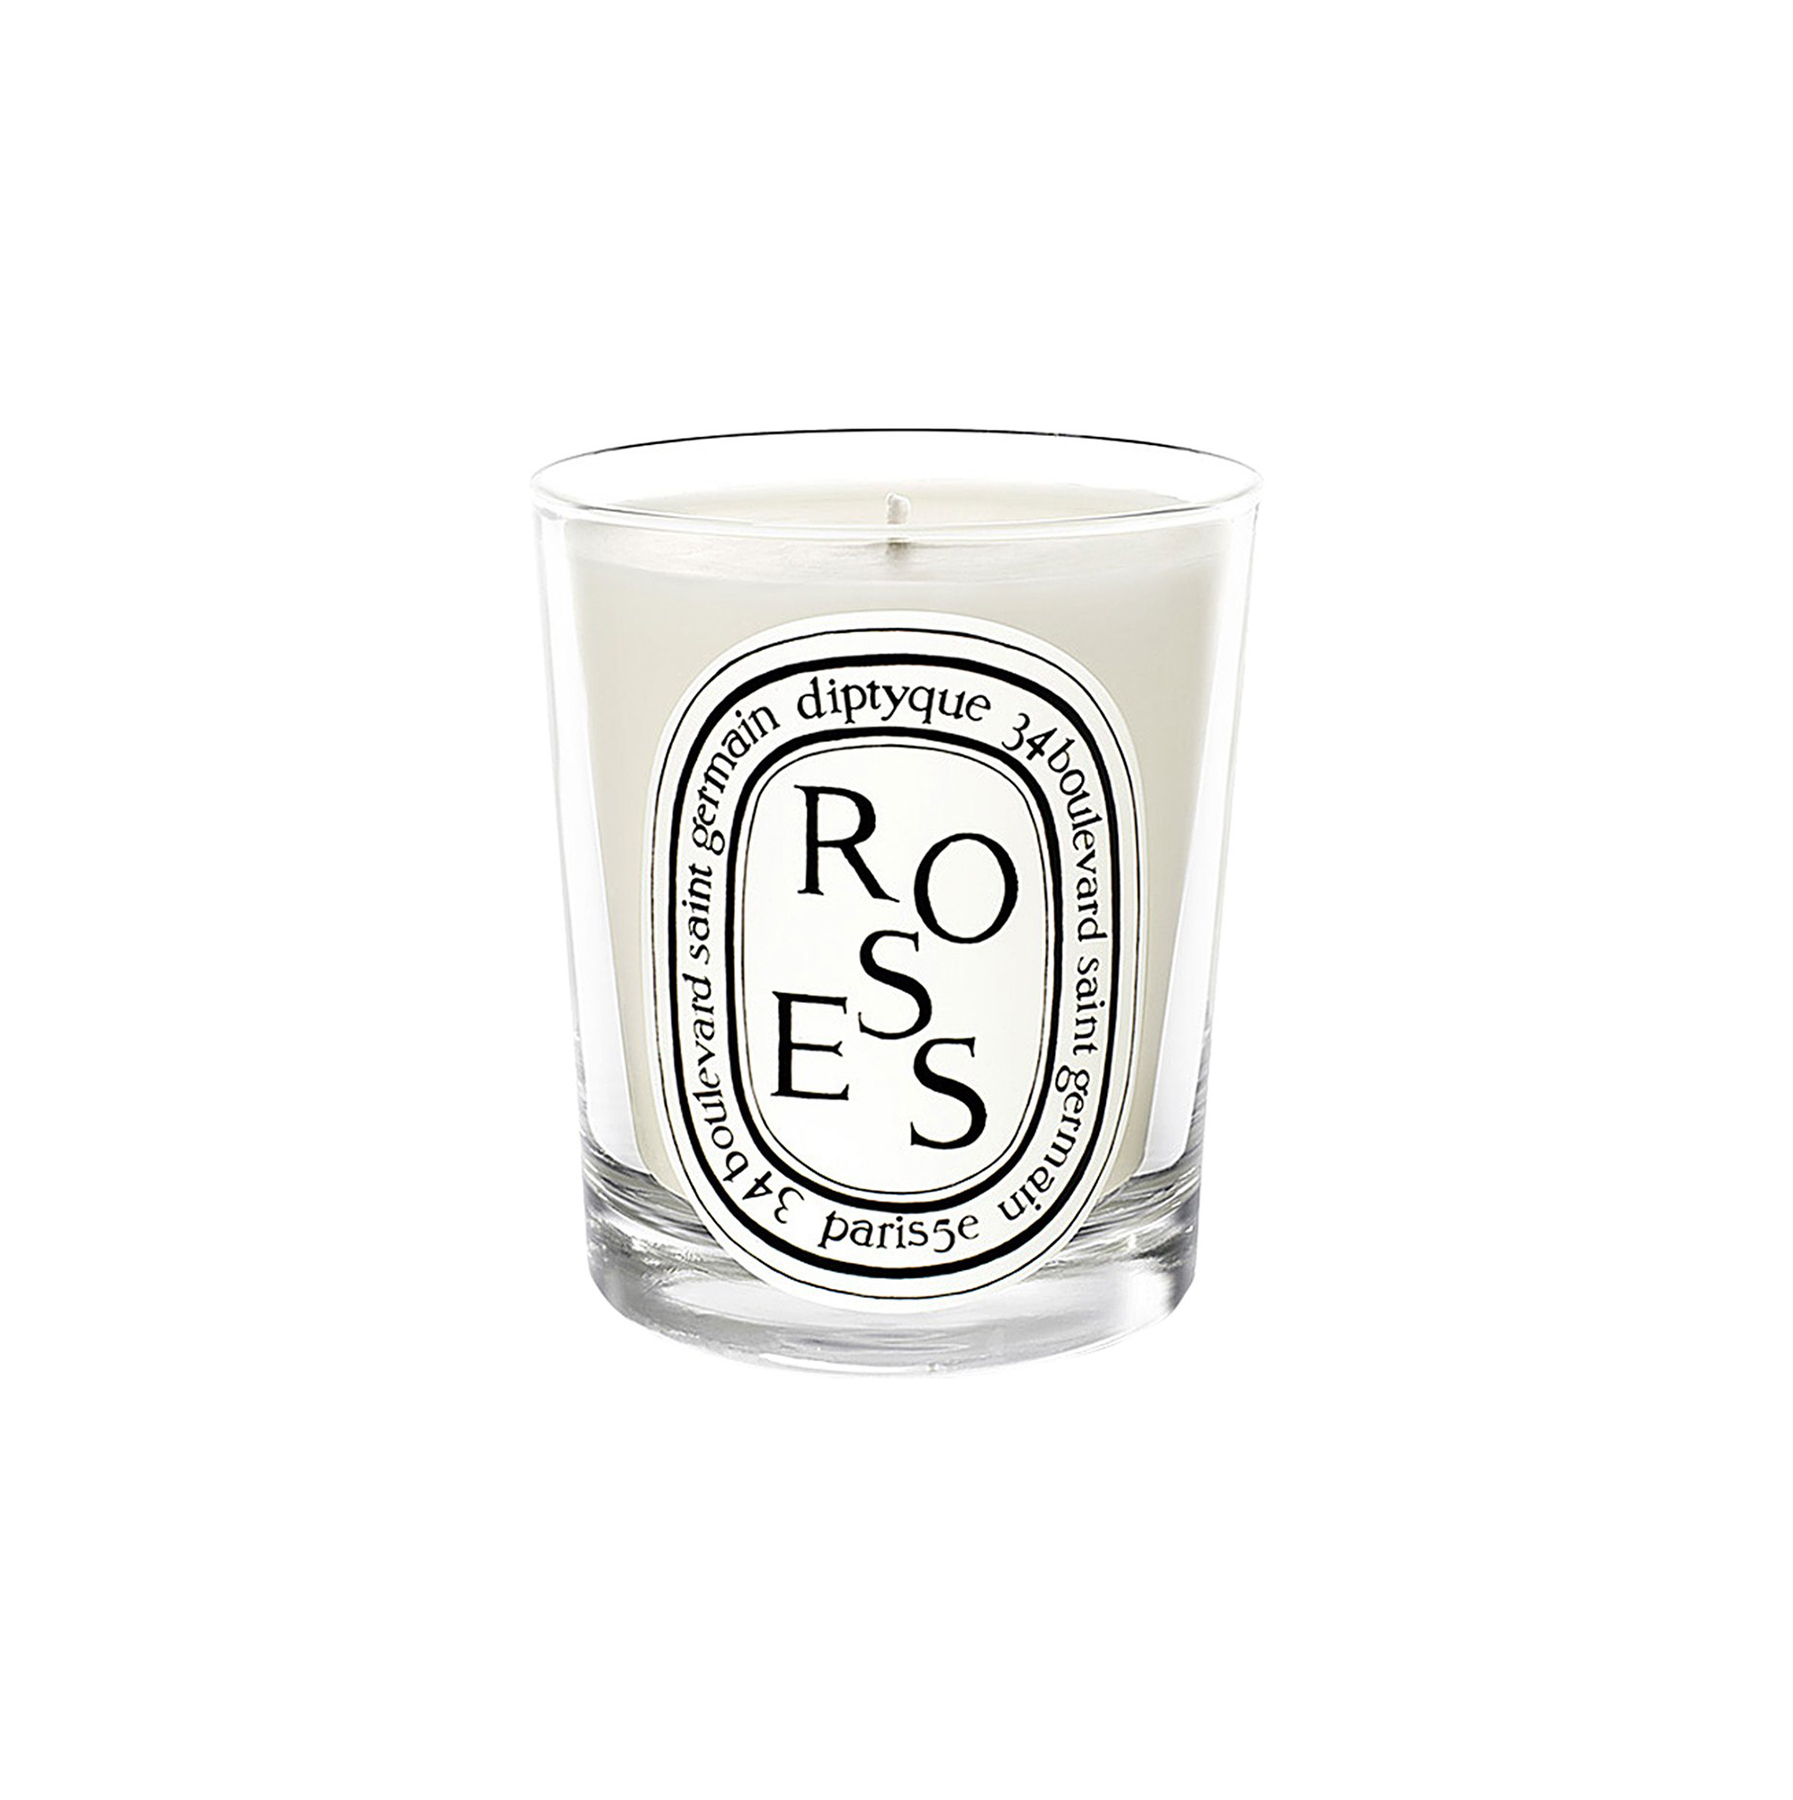 Creative Valentines day ideas for her: 'Roses' Scented Candle